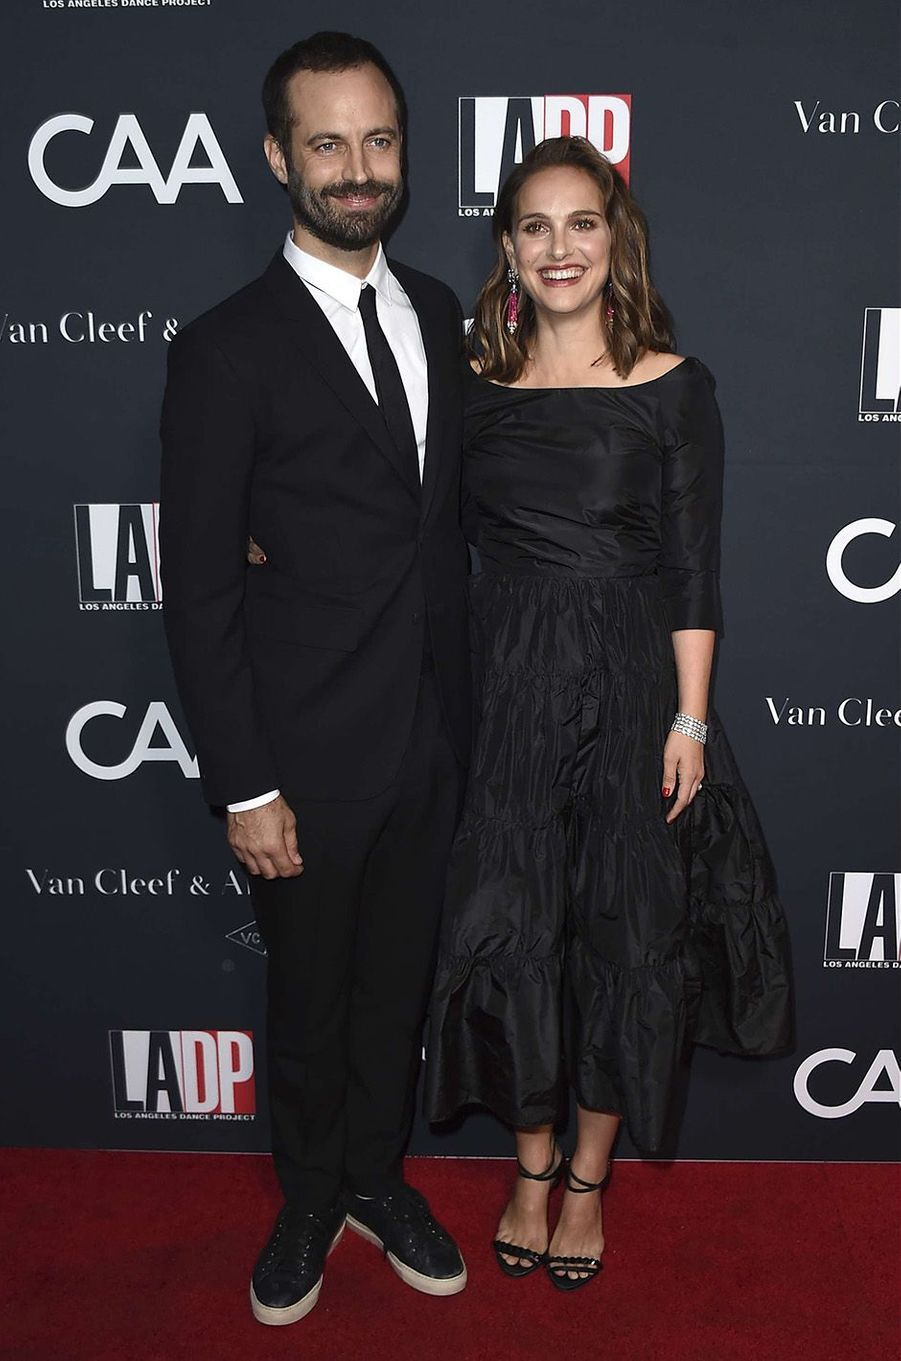 Benjamin Millepied et Natalie Portman sur le red carpet du L.A Dance Project, à Los Angeles, le 7 octobre 2017.